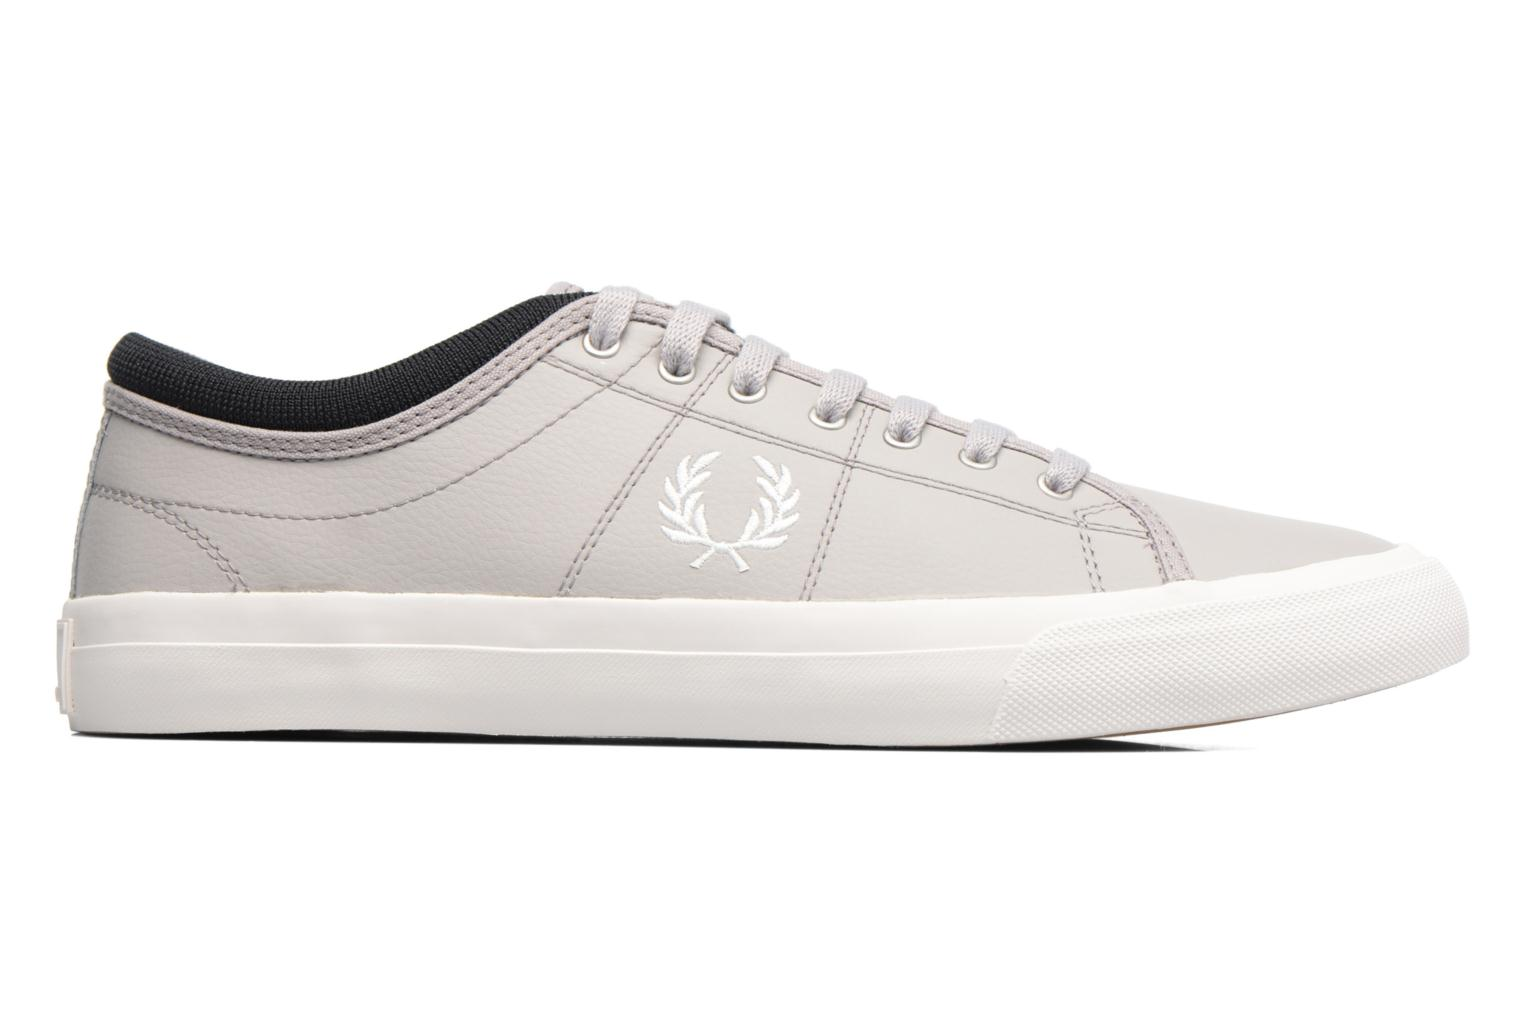 Baskets Fred Perry Kendrick Reversed Tipped Cuff Leather Gris vue derrière